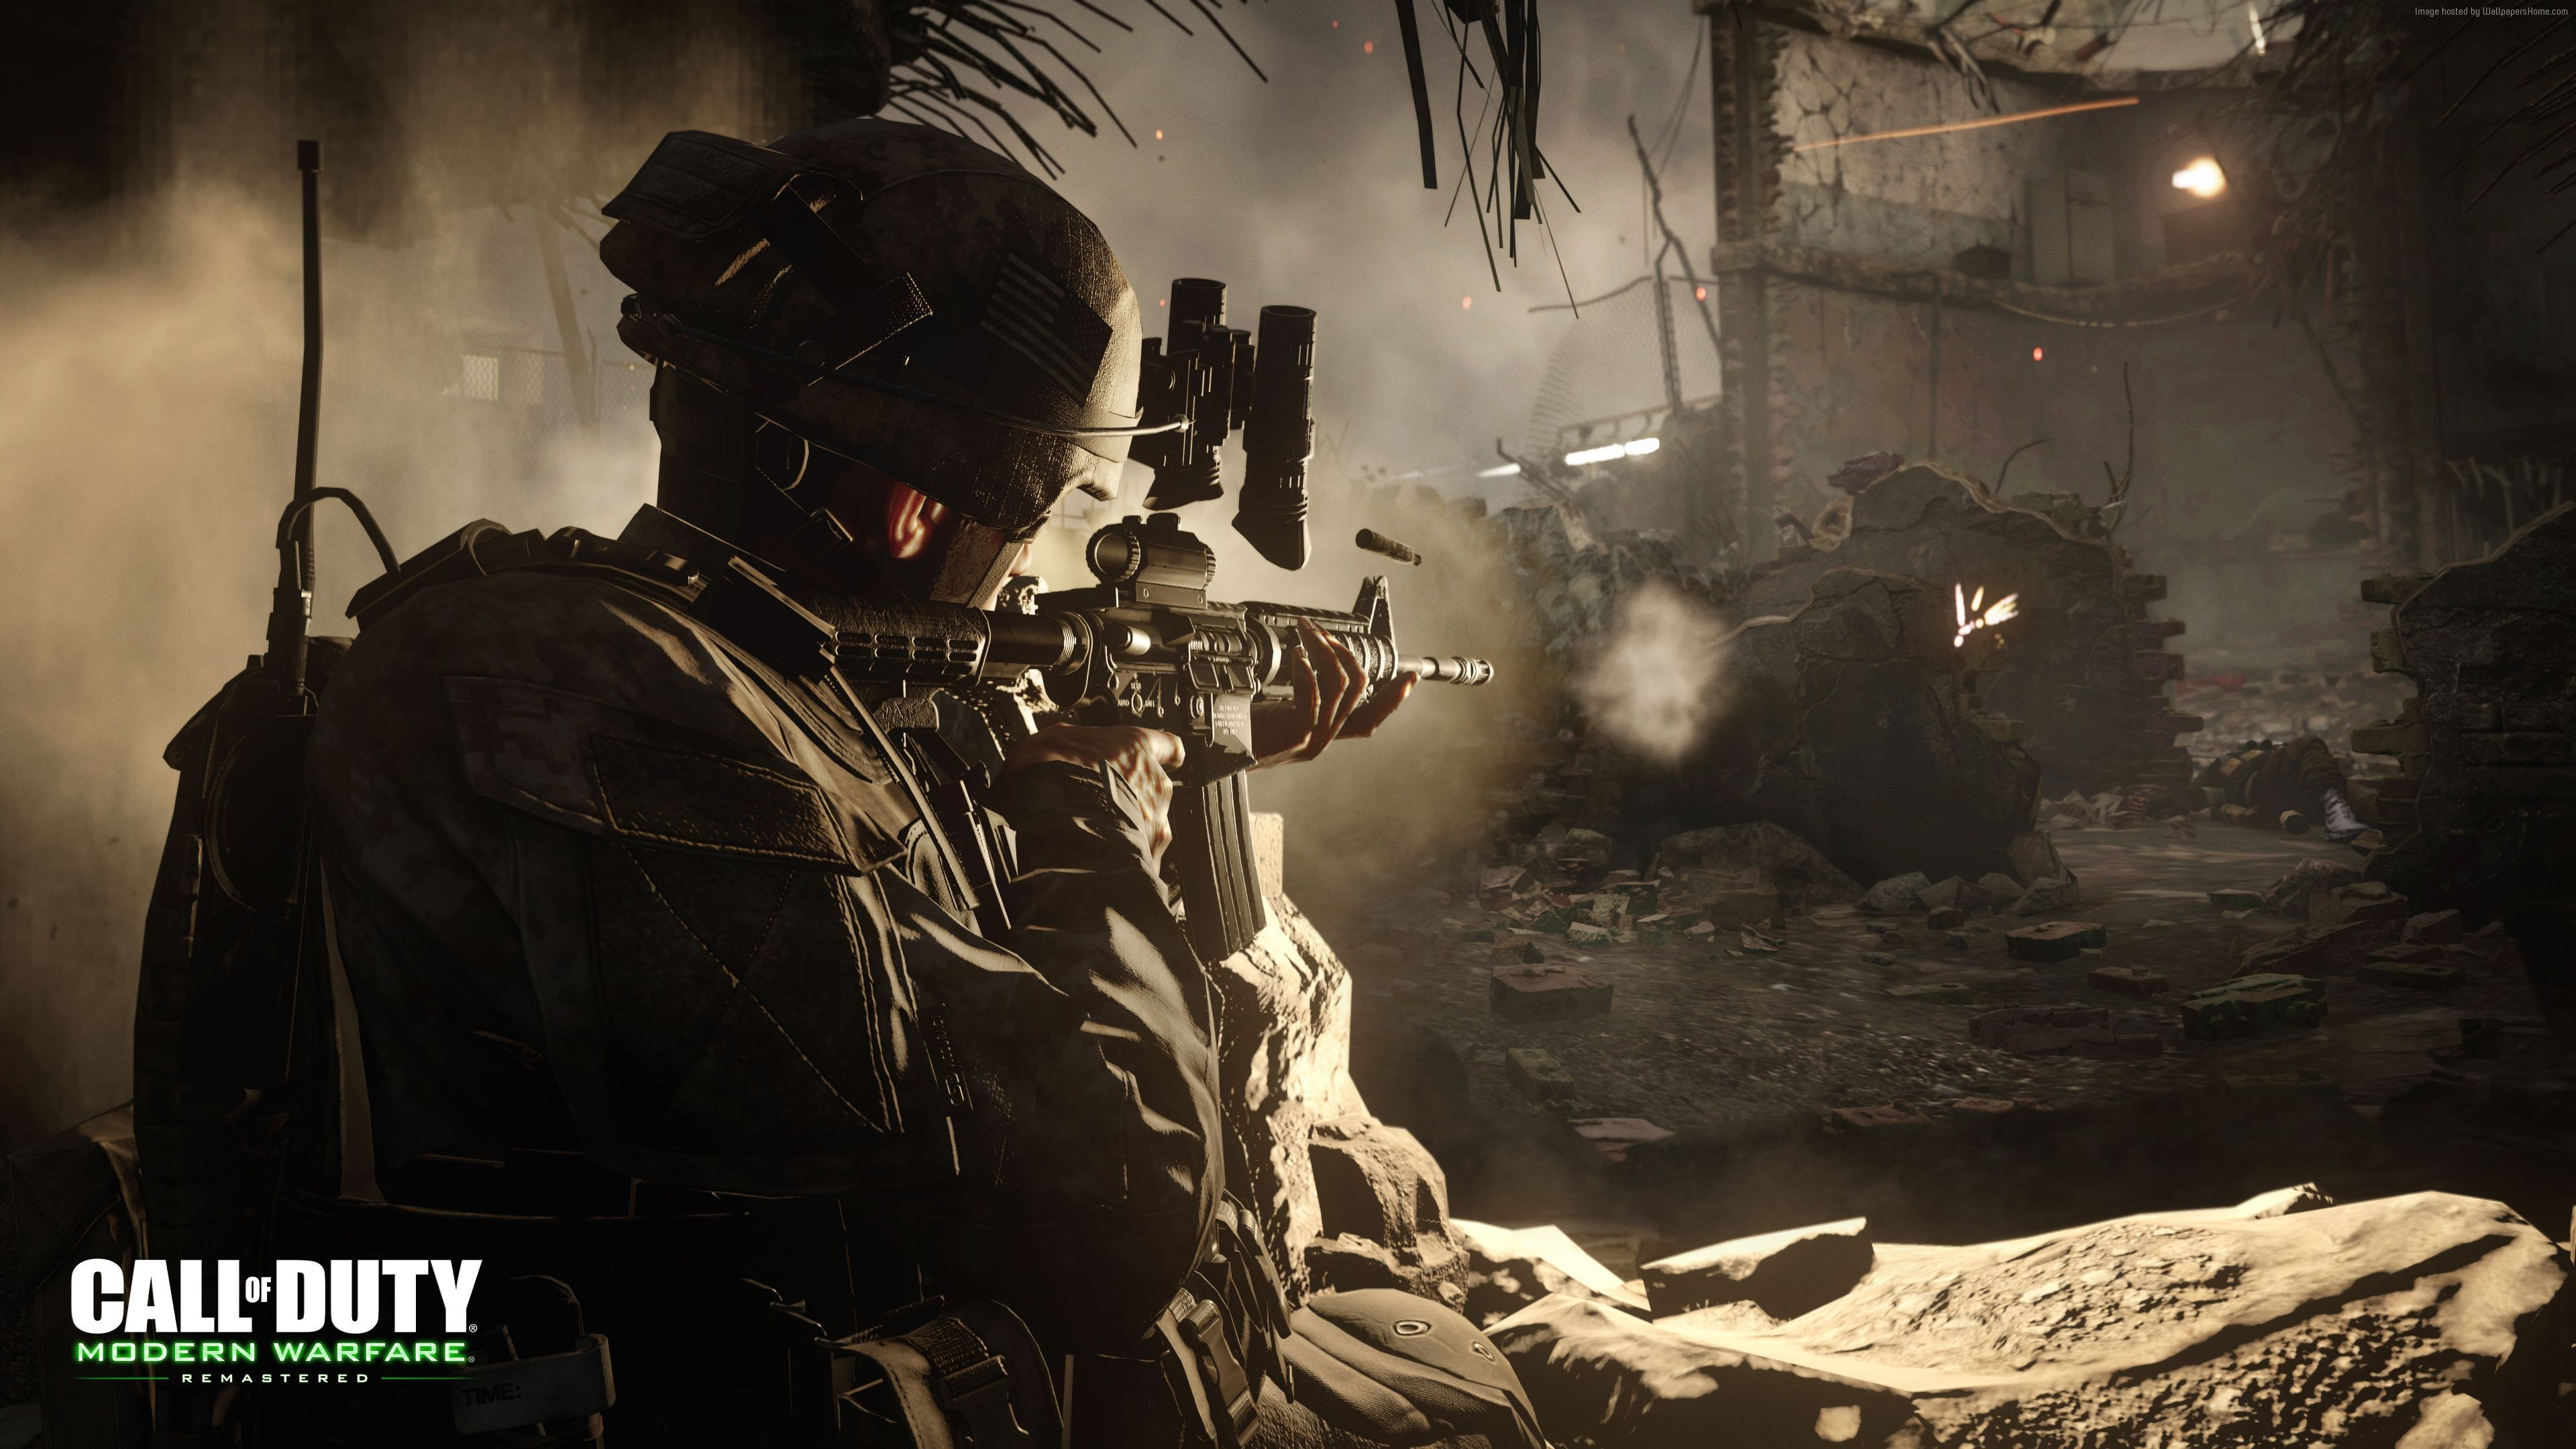 Call Of Duty Modern Warfare 2019 Wallpapers Wallpaper Cave